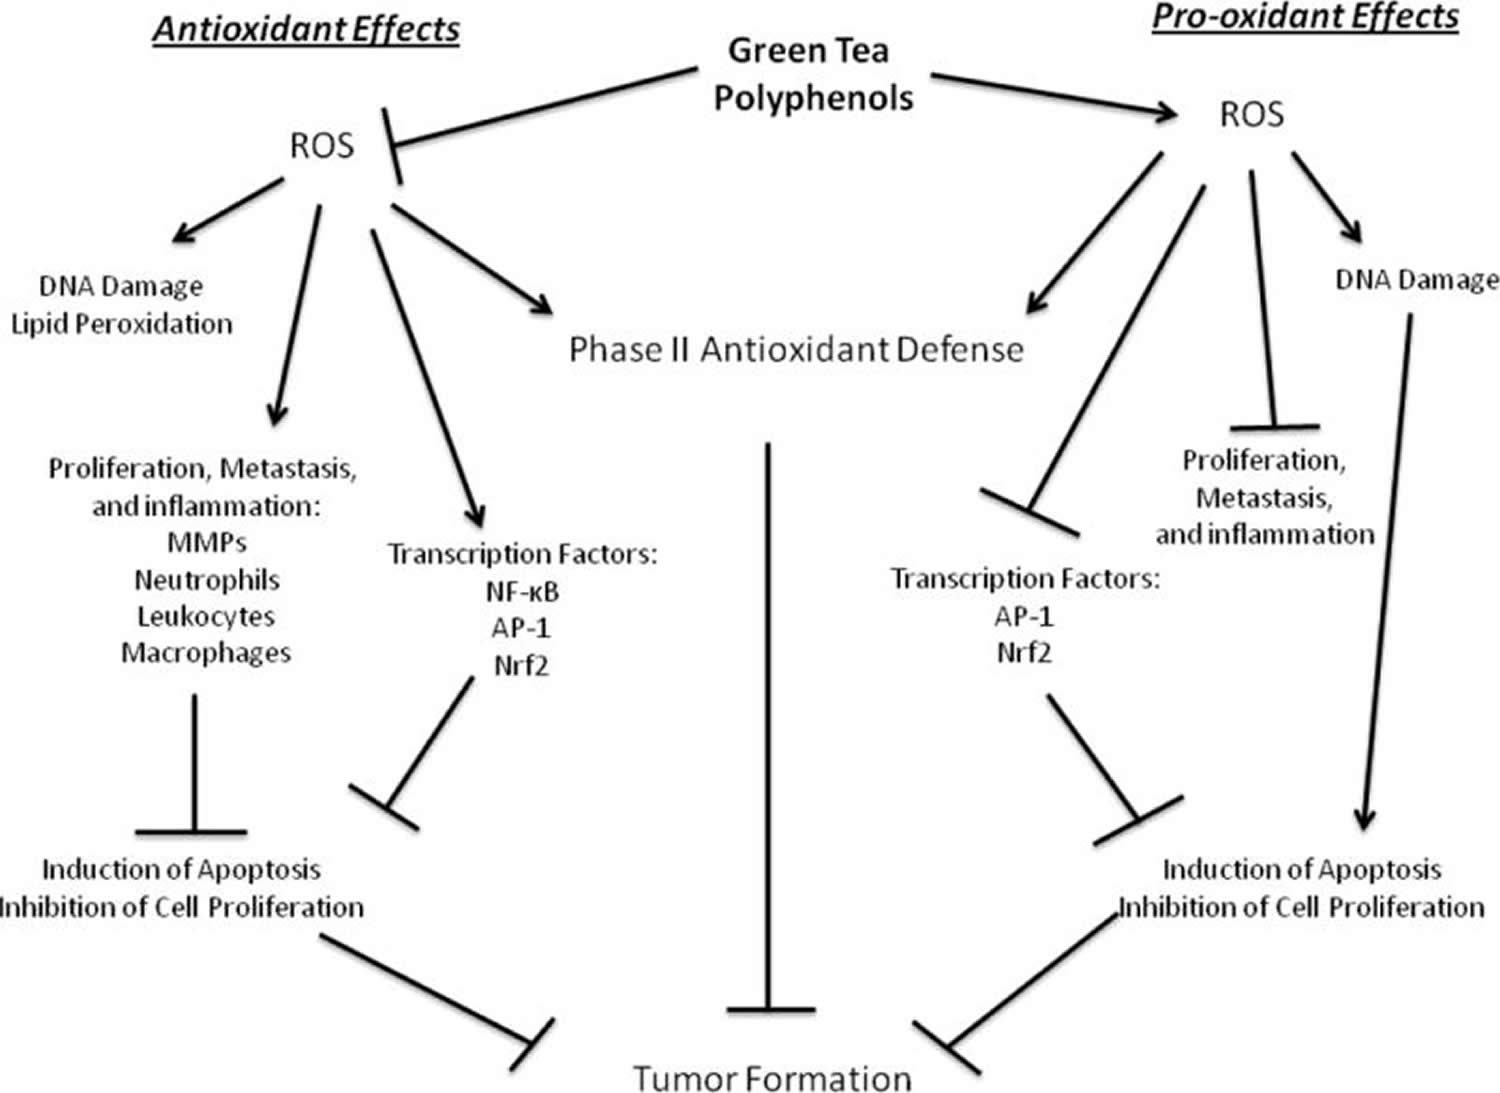 antioxidant and pro-oxidant effects of green tea polyphenols